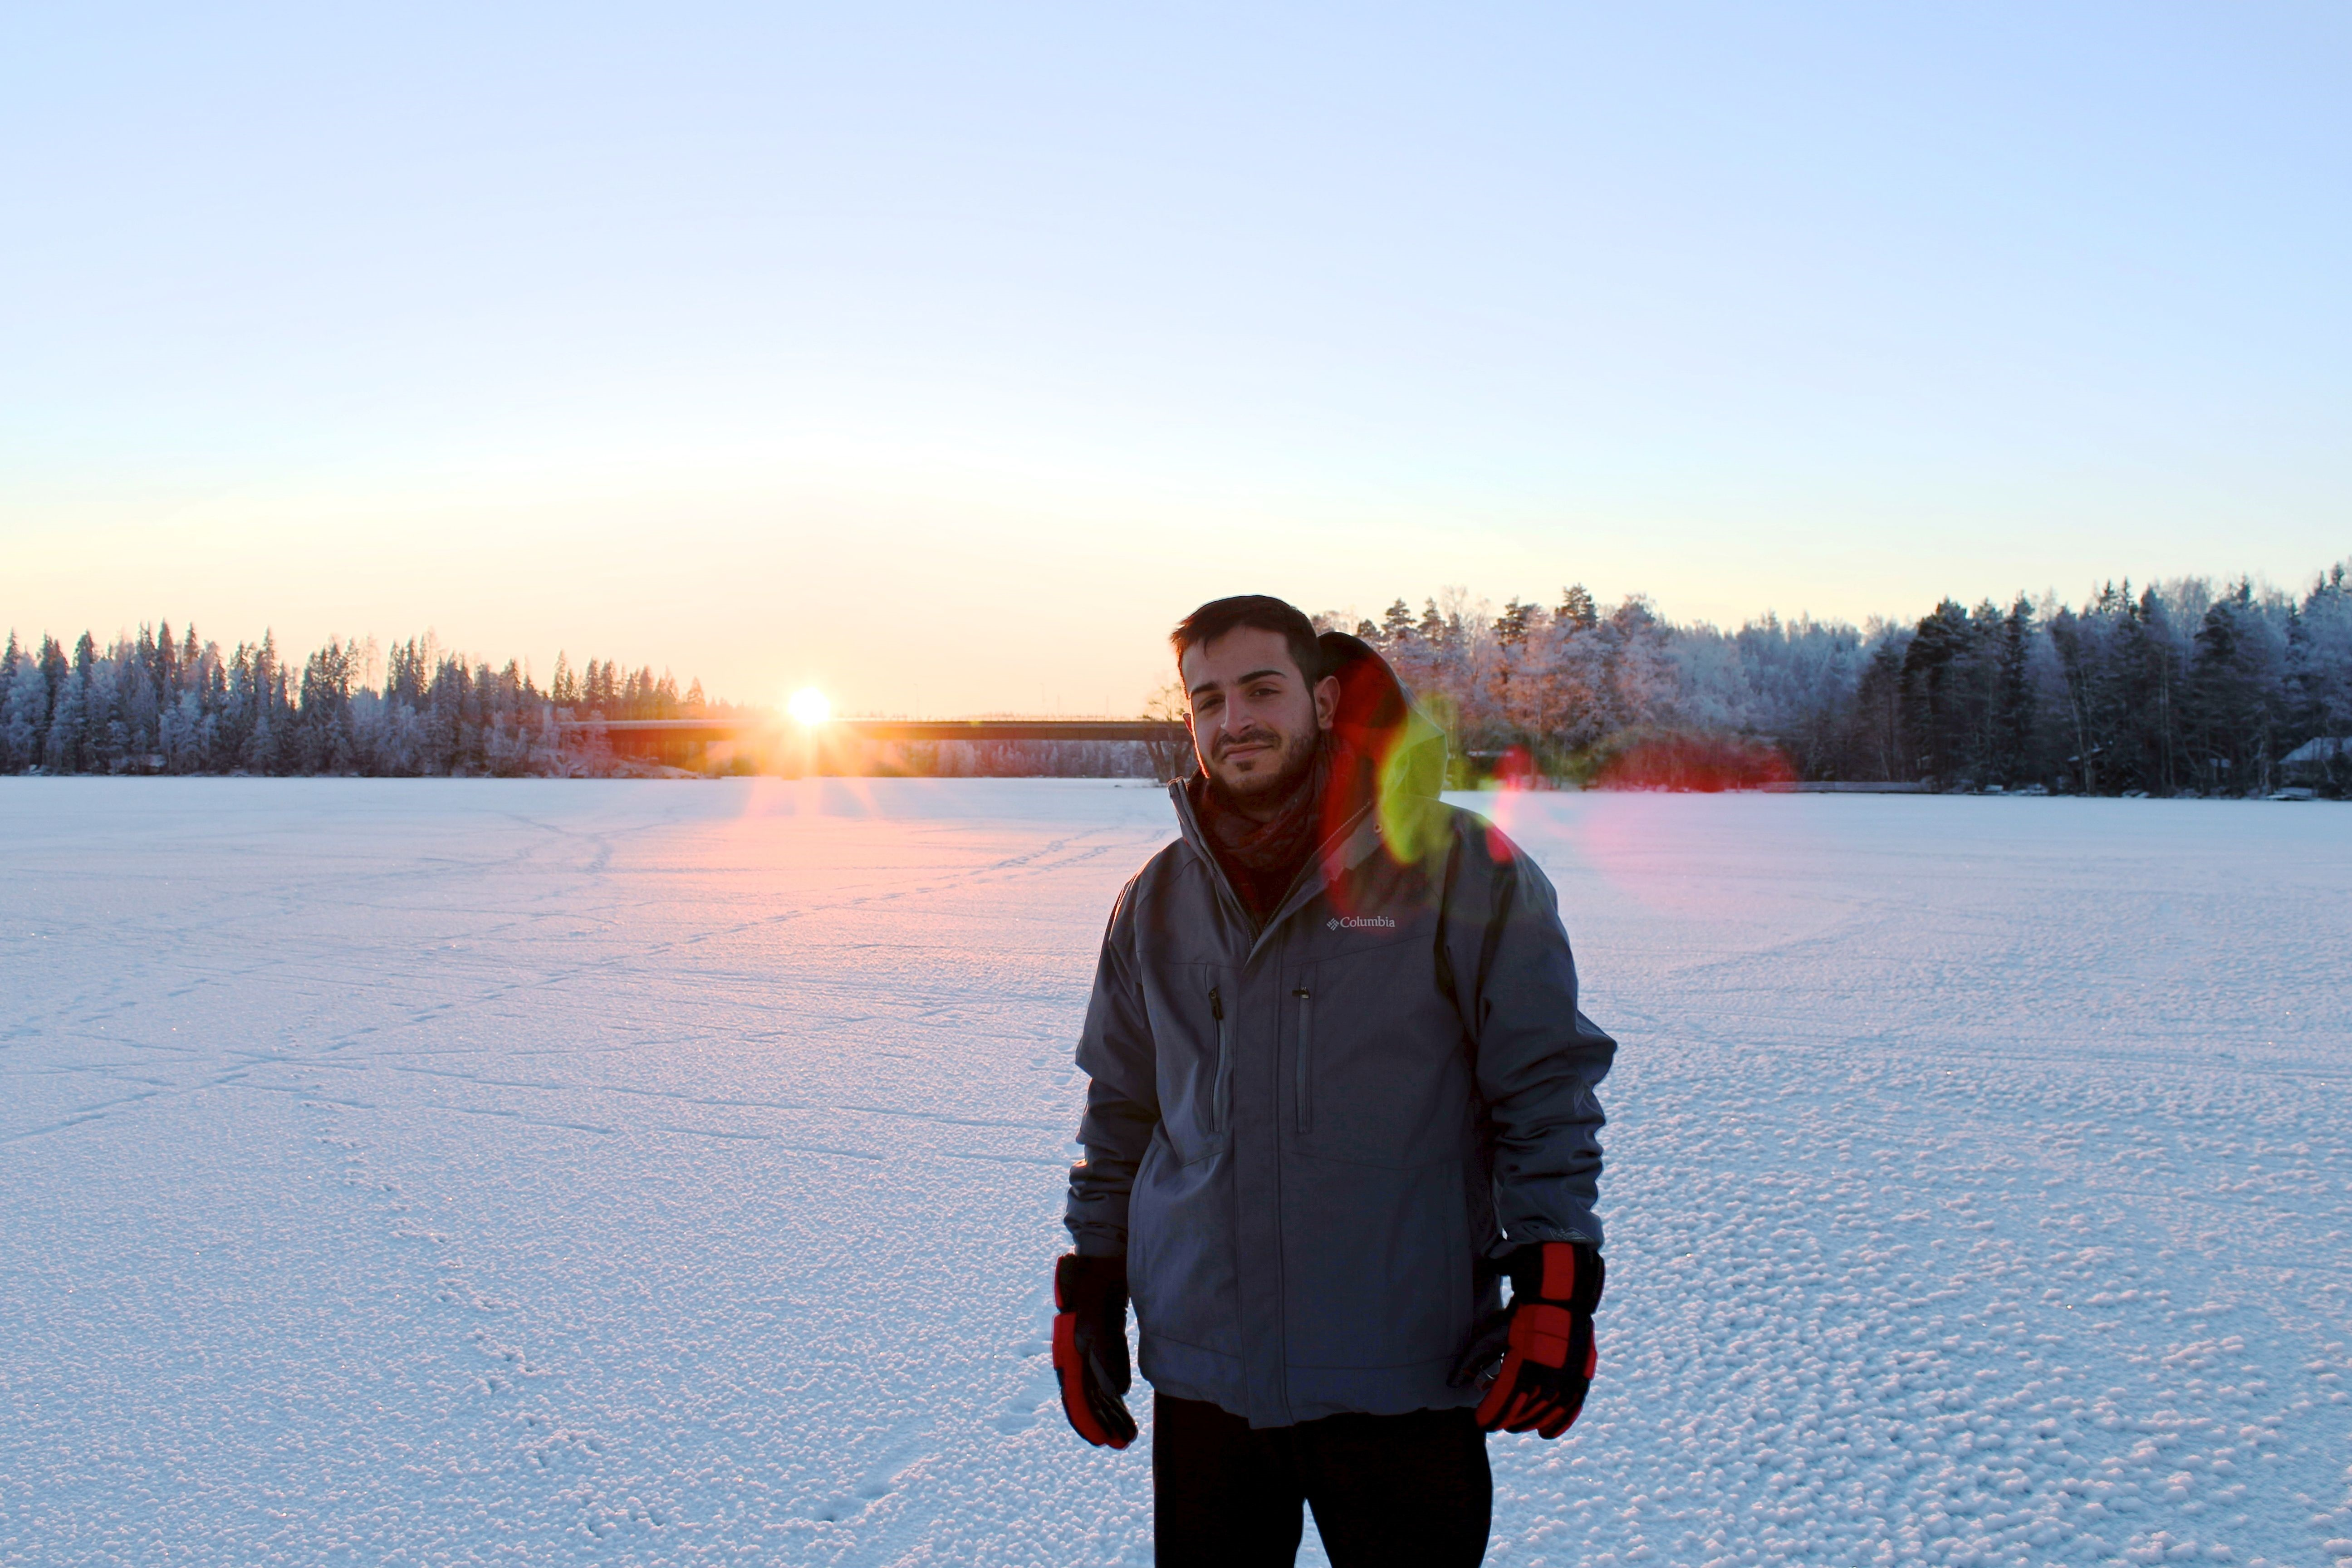 Meet Our Early Stage Researchers Sergio Moreschini From Tampere